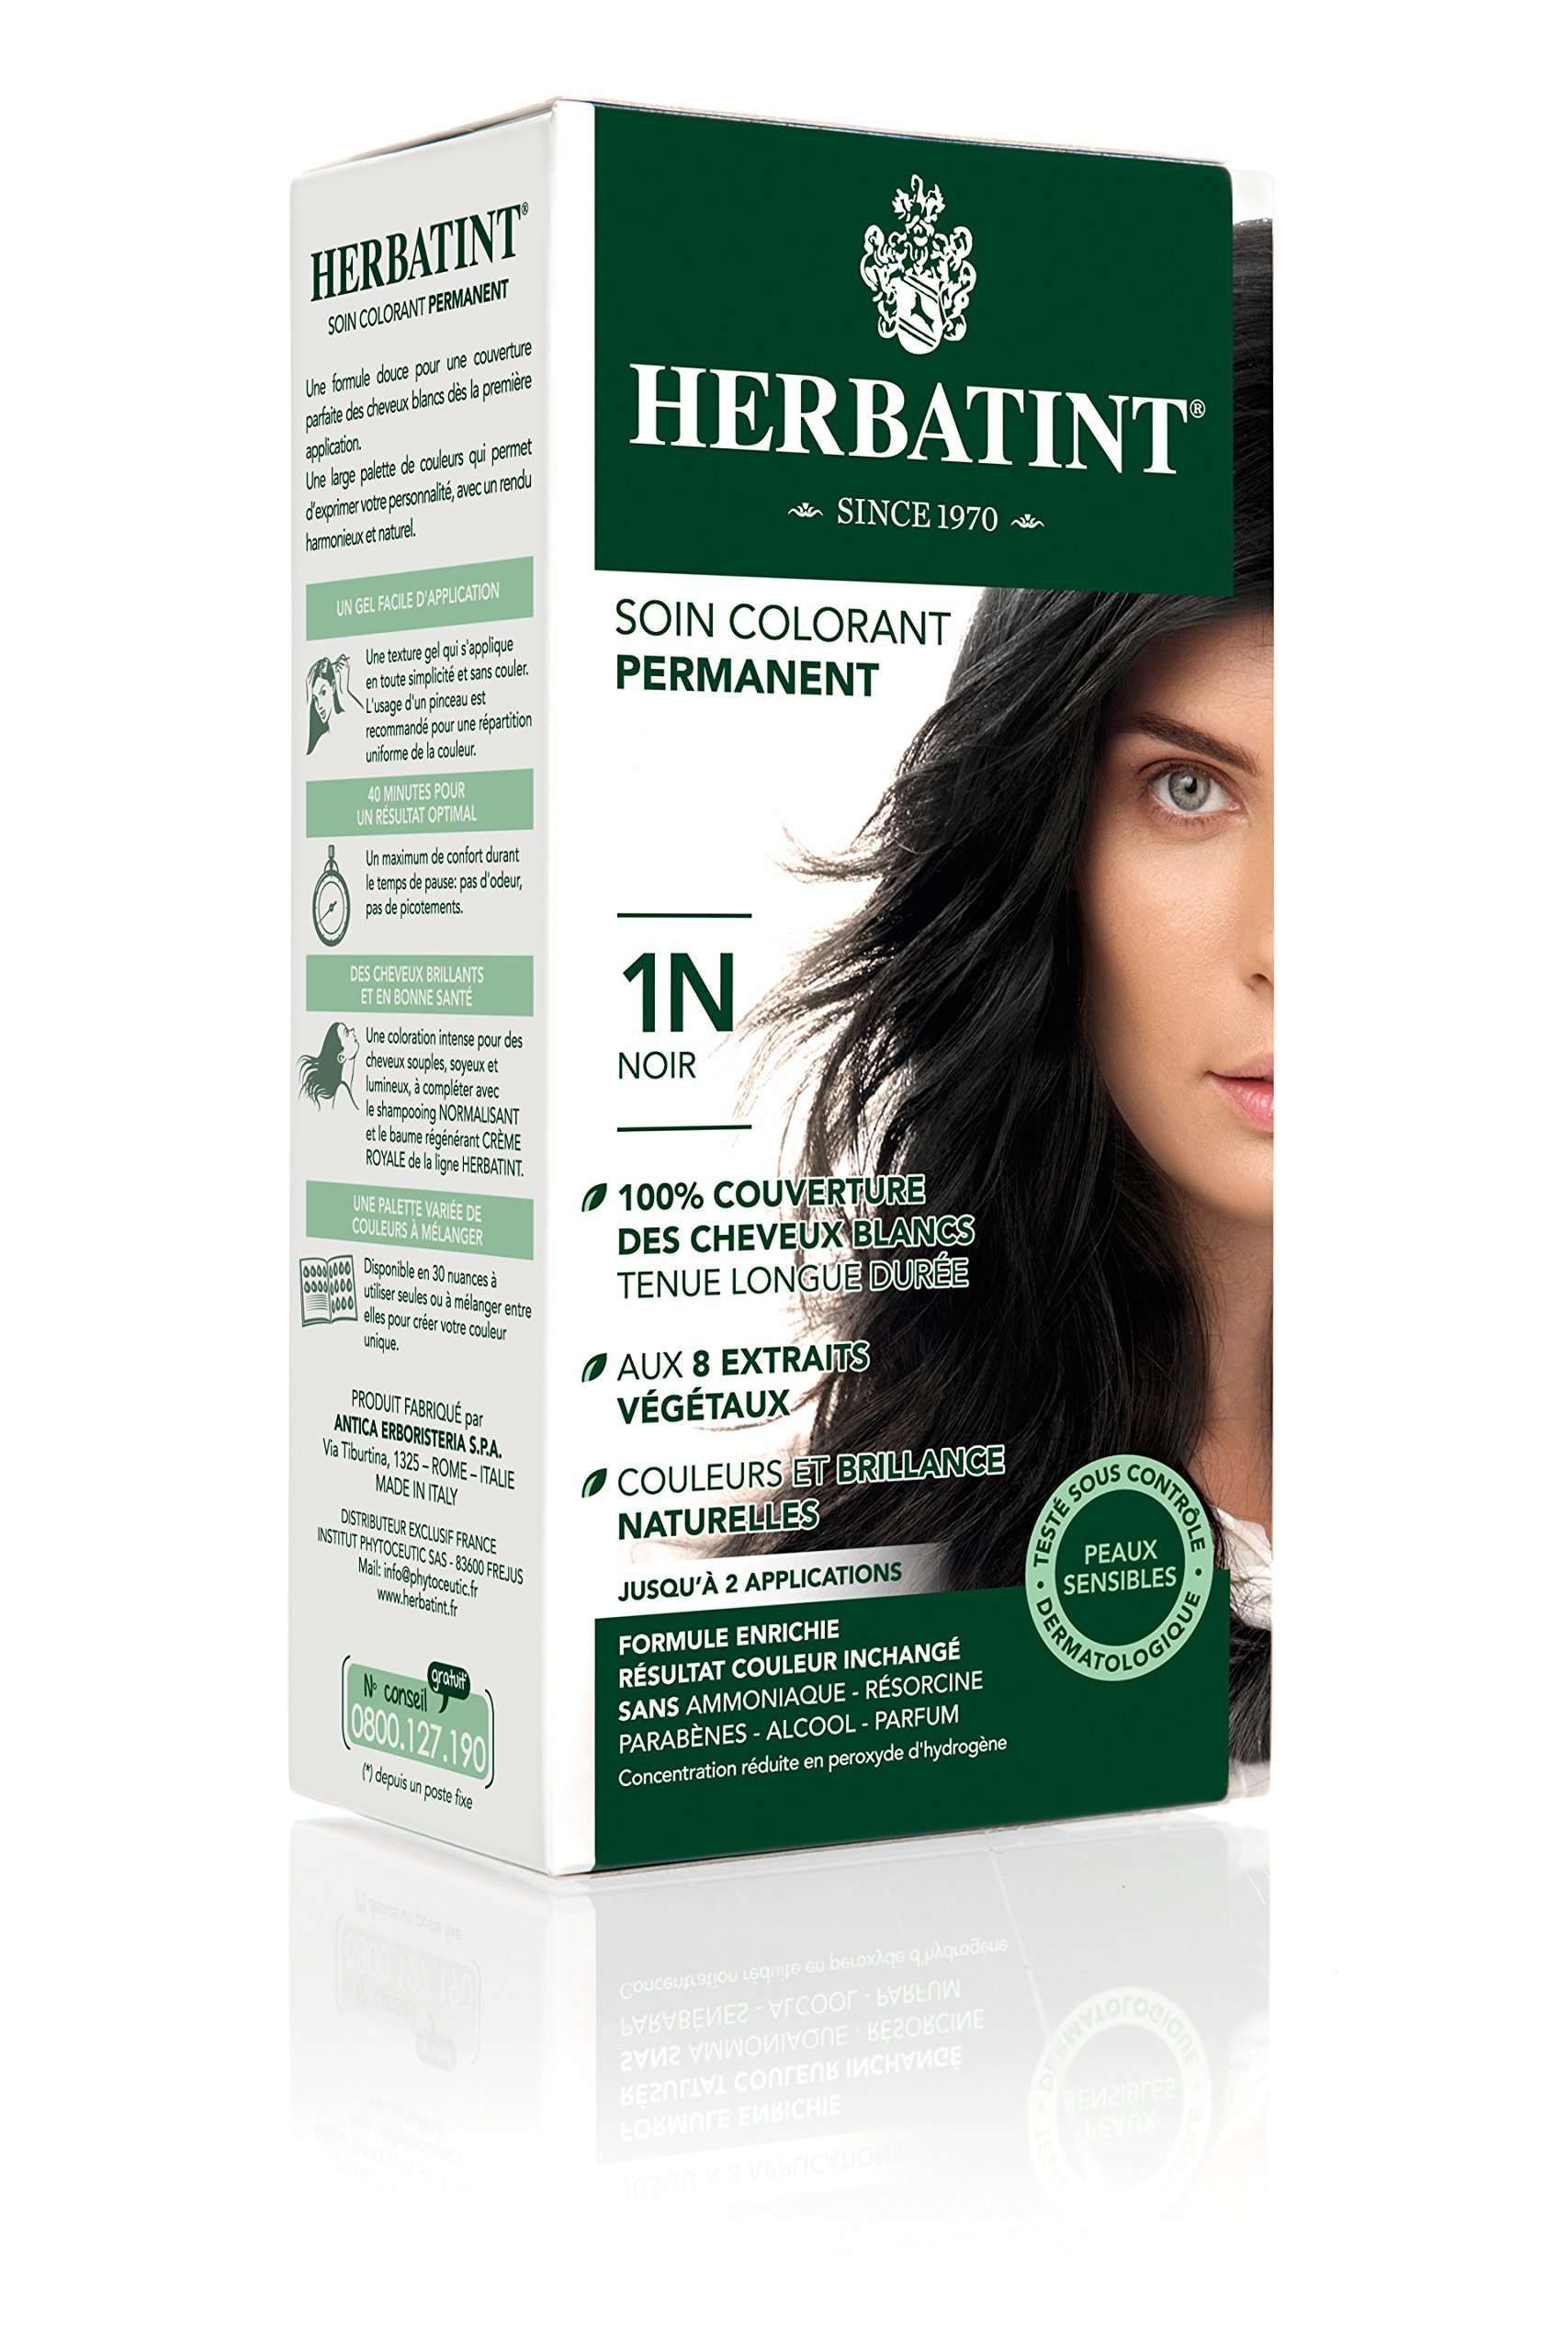 Herbatint Permanent Herbal Hair Color Gel, 1N Black, 4.56 Ounce